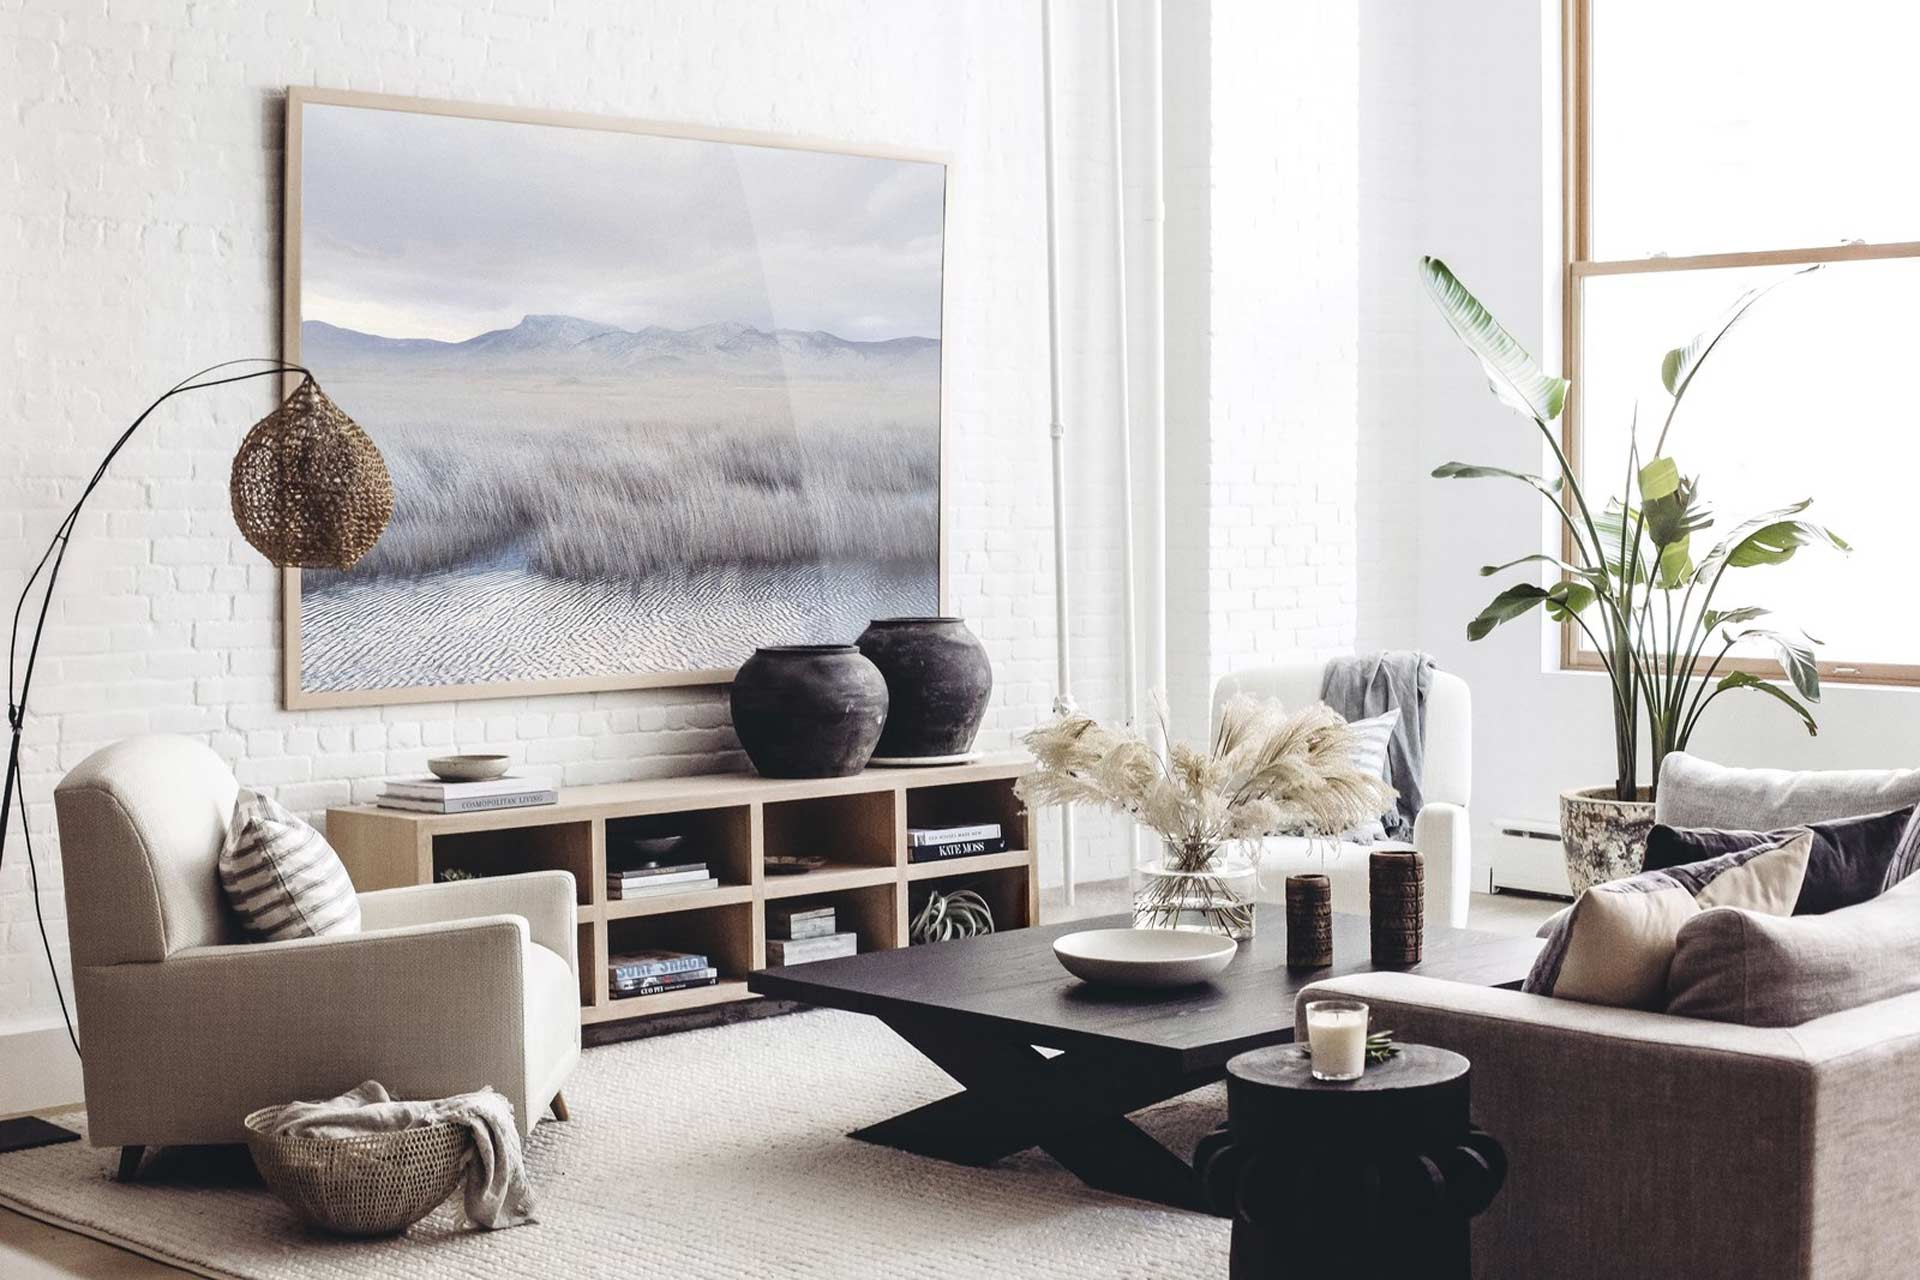 10 Interesting Facts that you should know about home decor